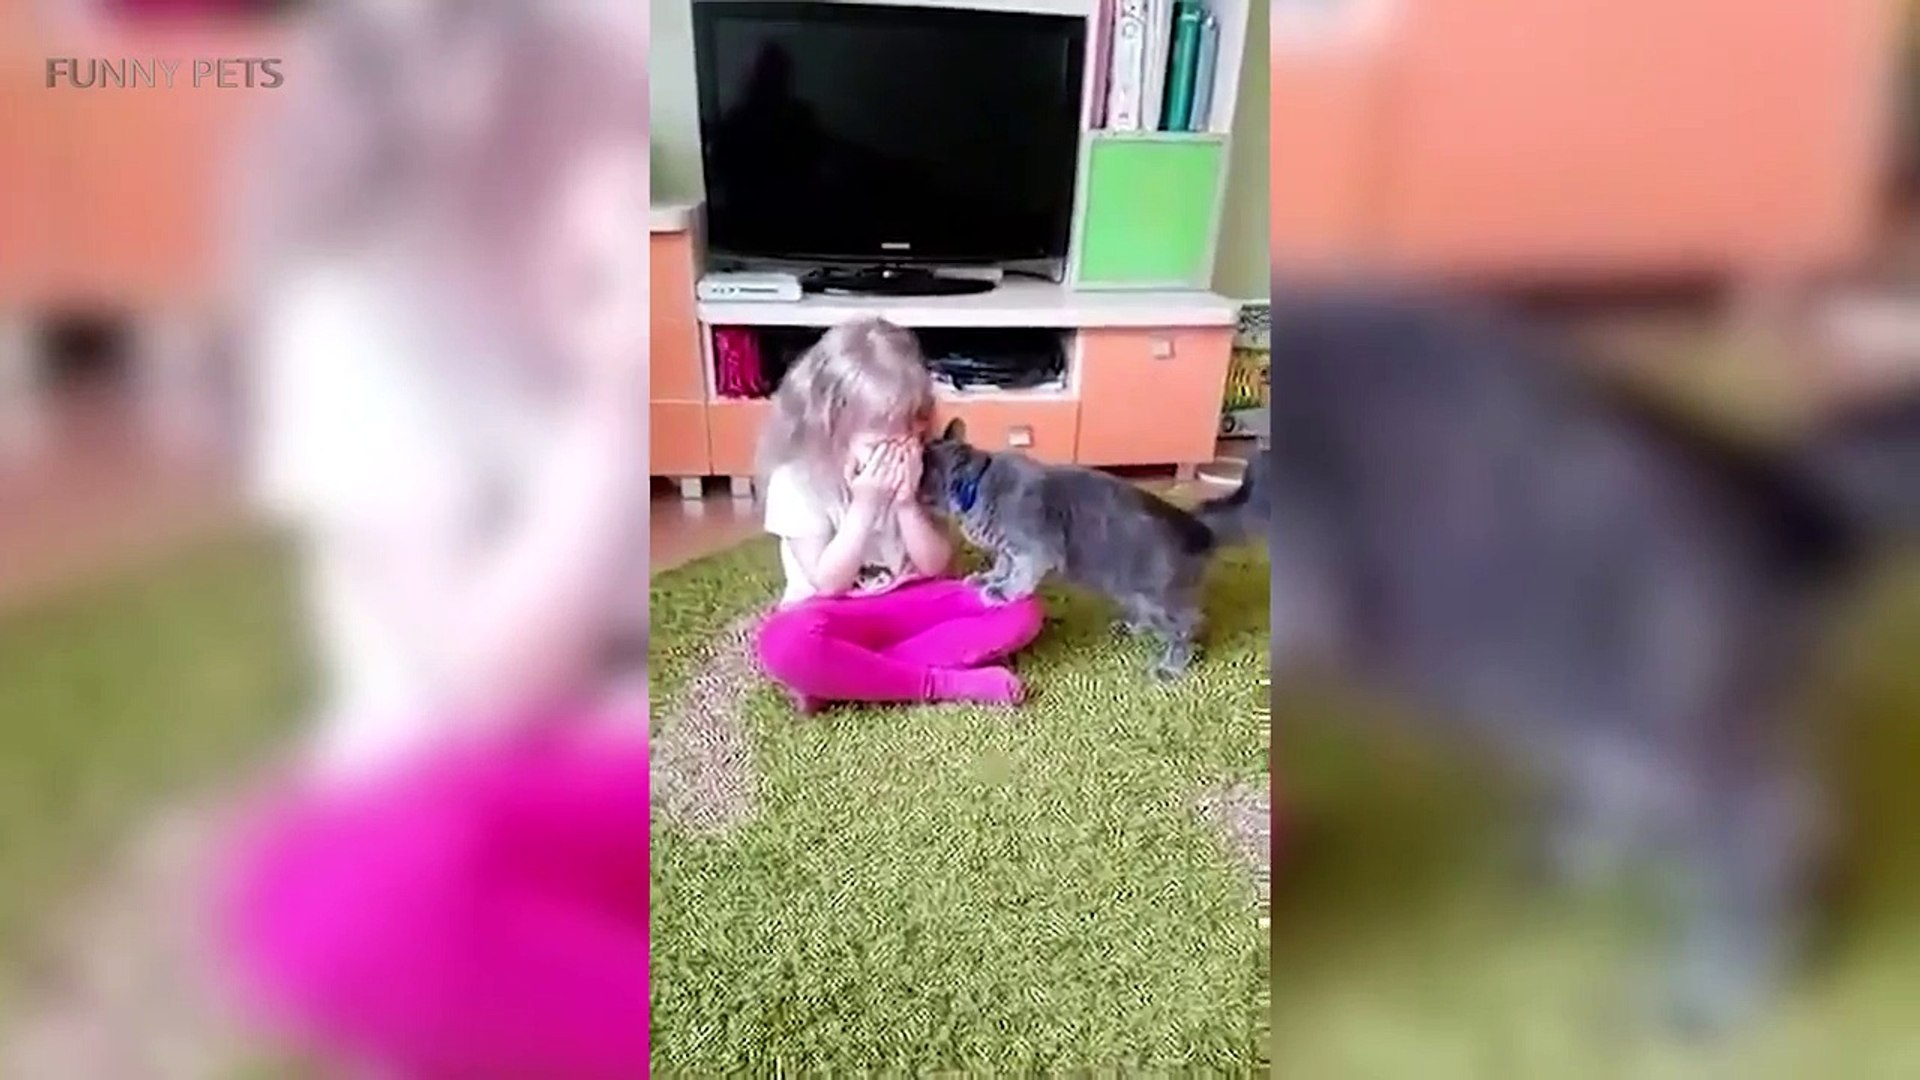 Children and Pets  Funny Children Playing with Pets Funny Pets